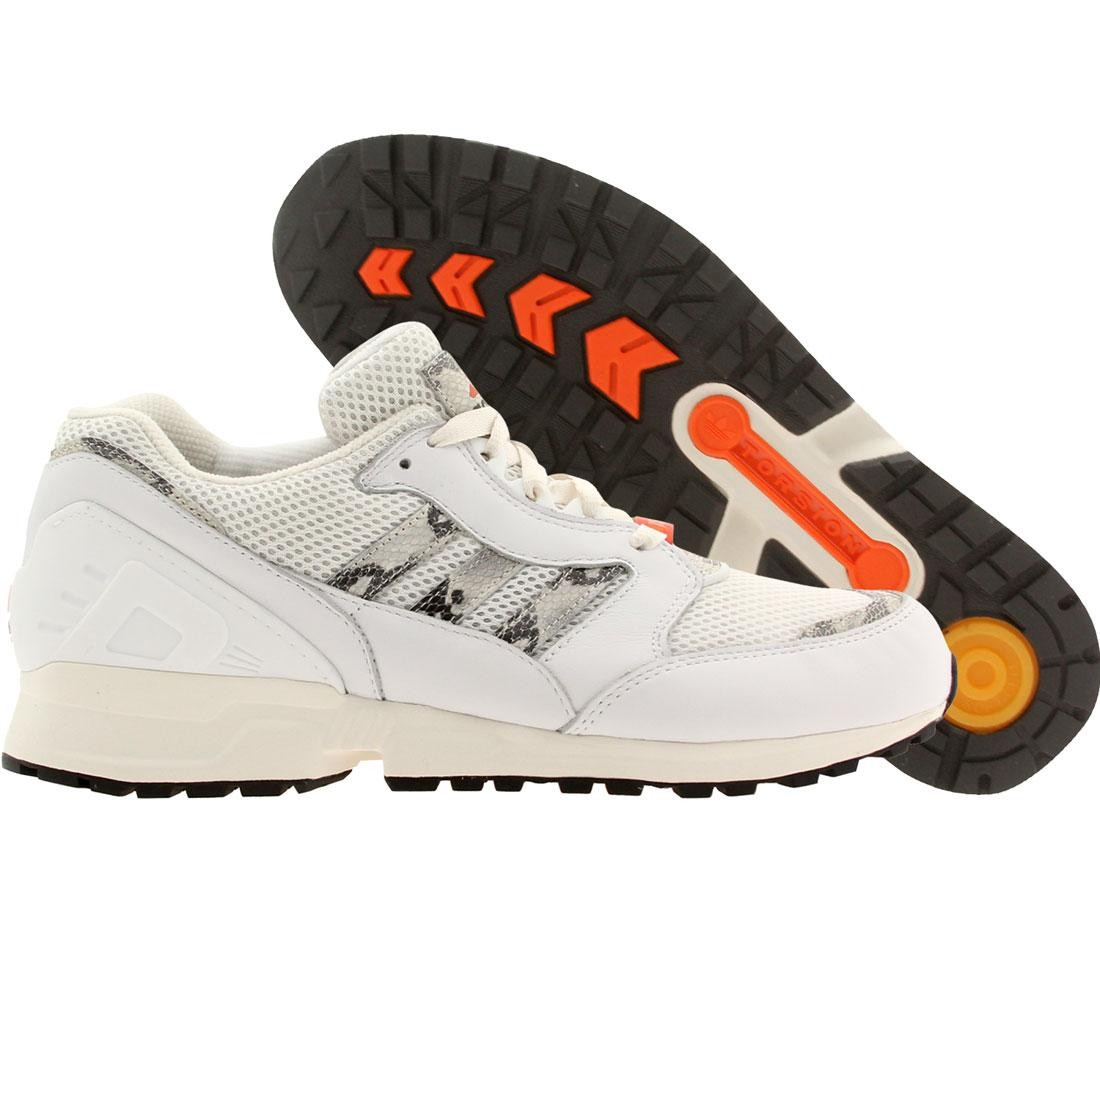 【海外限定】アディダス メンズ靴 スニーカー 【 ADIDAS MEN EQUIPMENT RUNNING CUSHION WHITE NEOWHI CWHITE CORANG 】